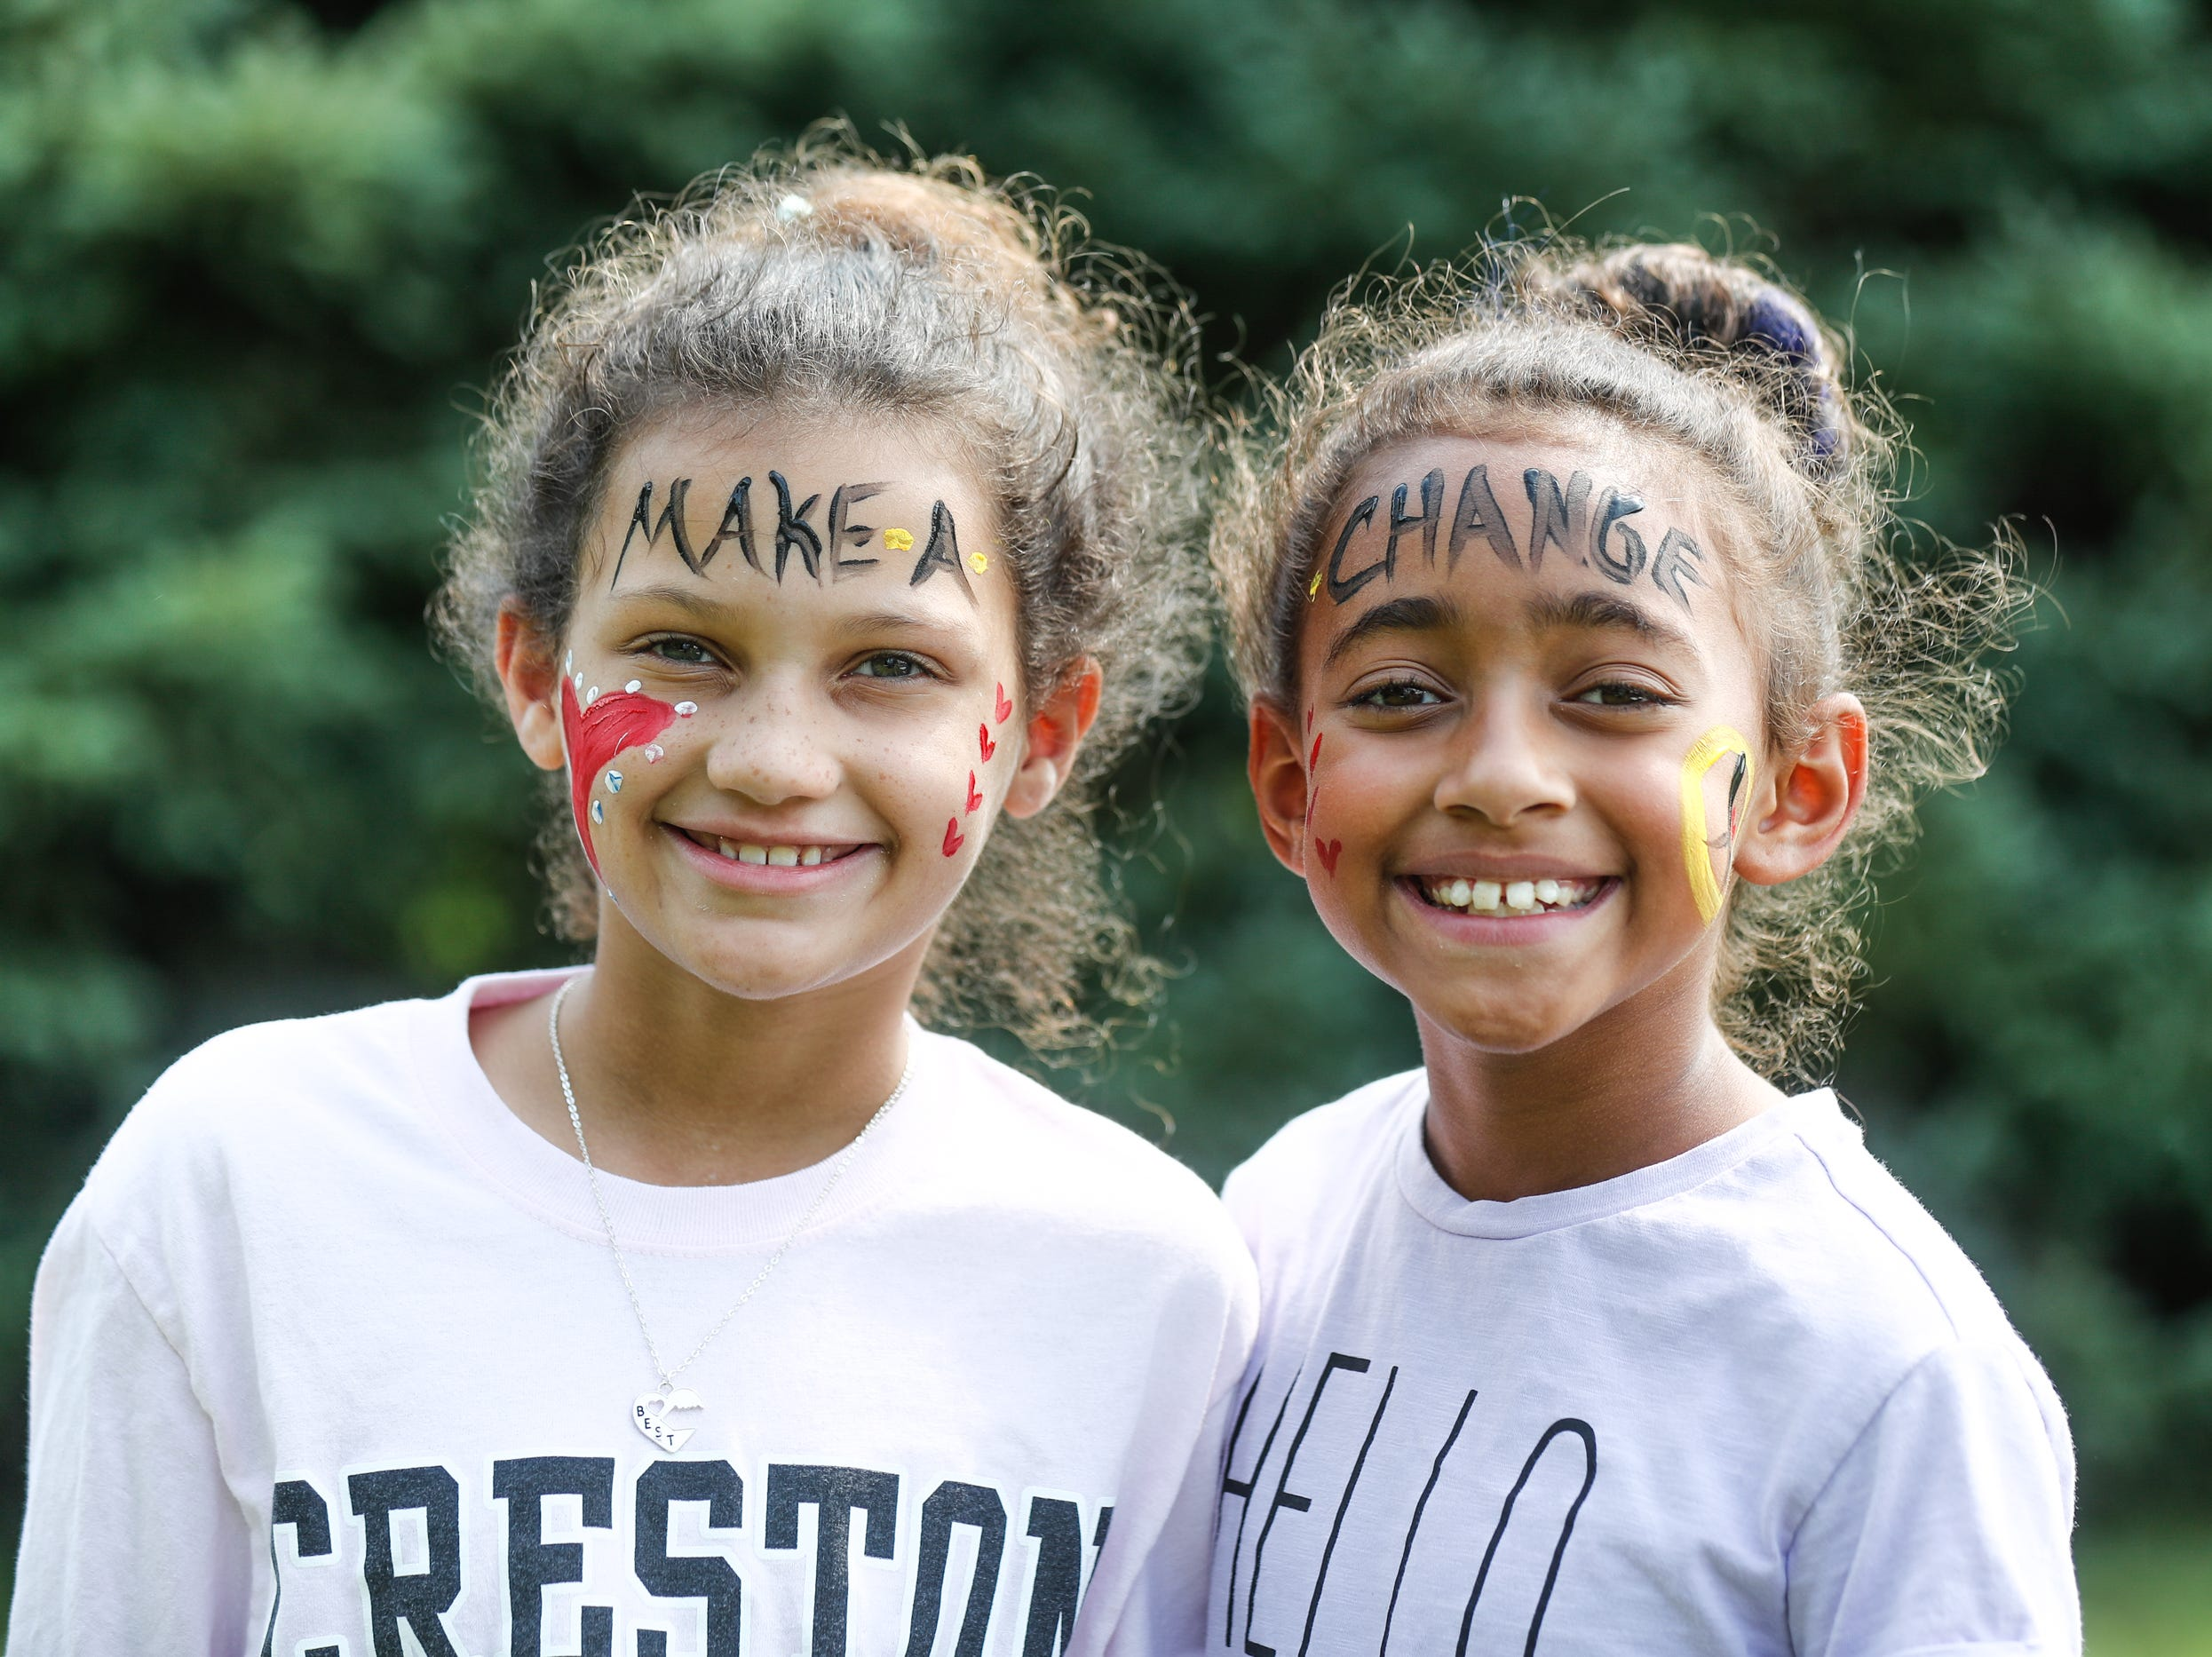 Best friends Malia Hillsman left, and Natalie Hilliard have their faces painted during the 'We Live' second annual Peace Walk and Community Day to end youth violence at Washington Park on Saturday, Aug. 11, 2018. ''We Live,' which stands for 'Linked To Intercept Violence' was started by students from Warren Central High School in Indianapolis.